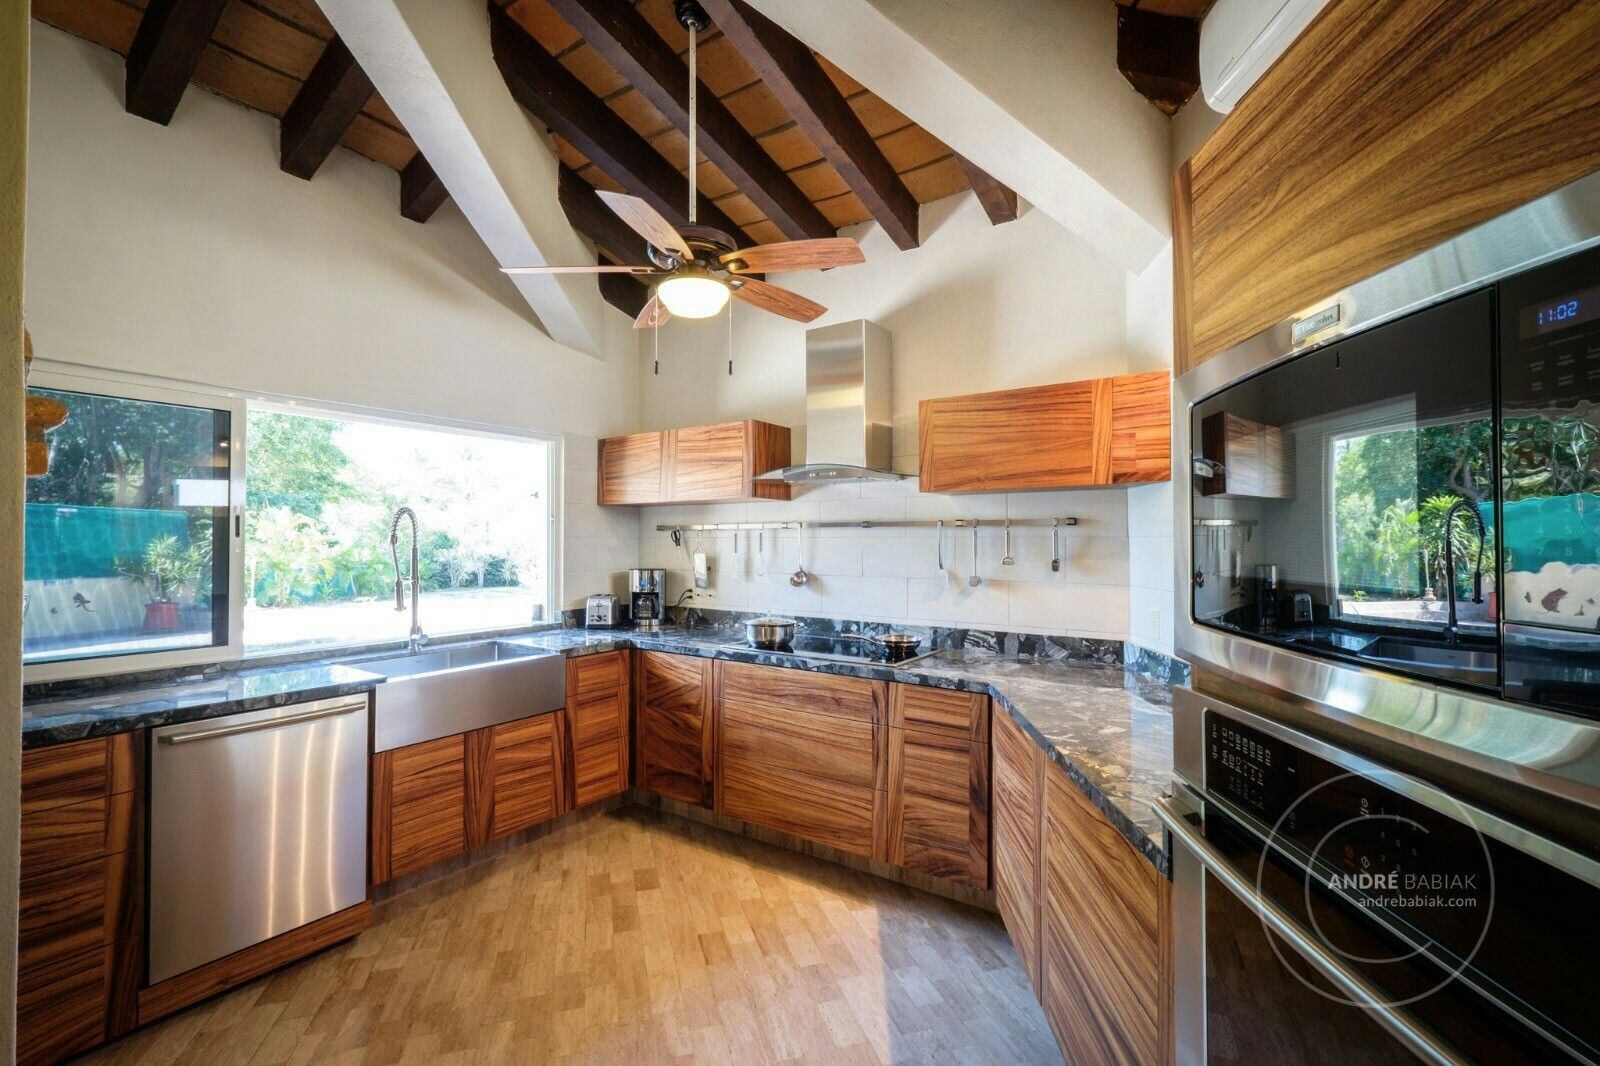 Look at this New Kitchen Remodel done